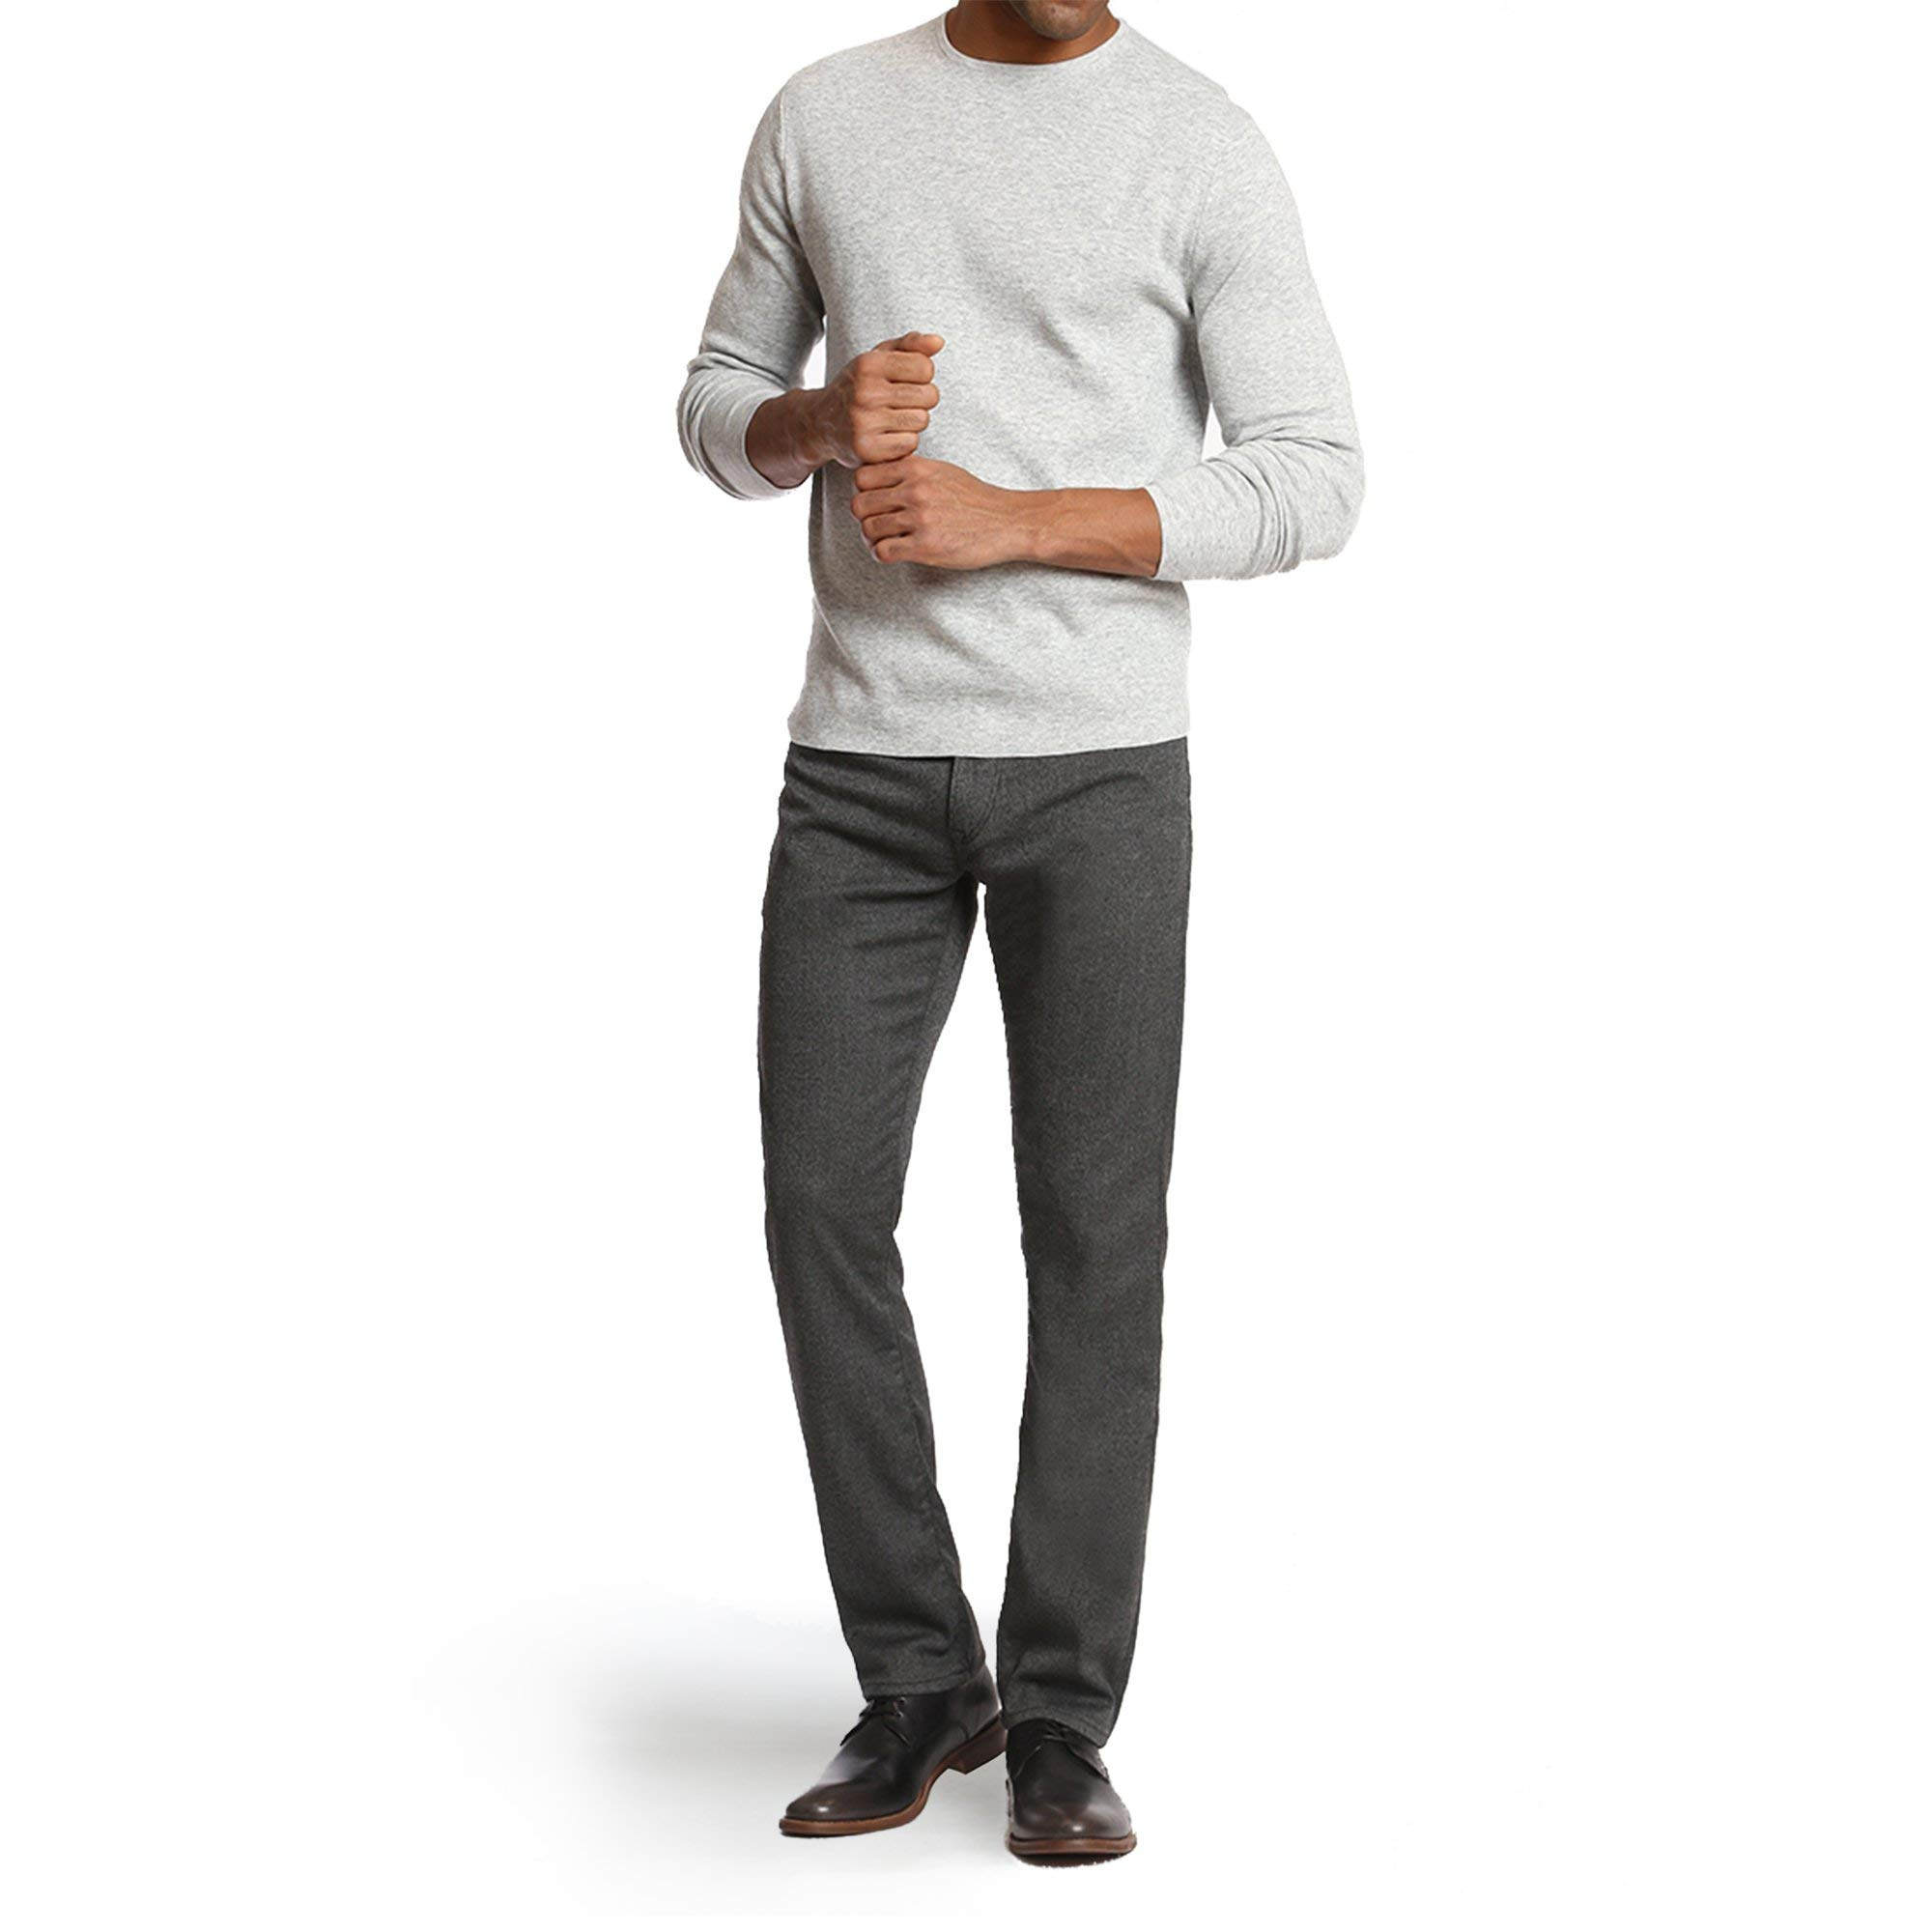 34 Heritage Men's Charisma Relaxed Classic Pants, Grey Feather Tweed 34 x 34 by 34 Heritage (Image #2)